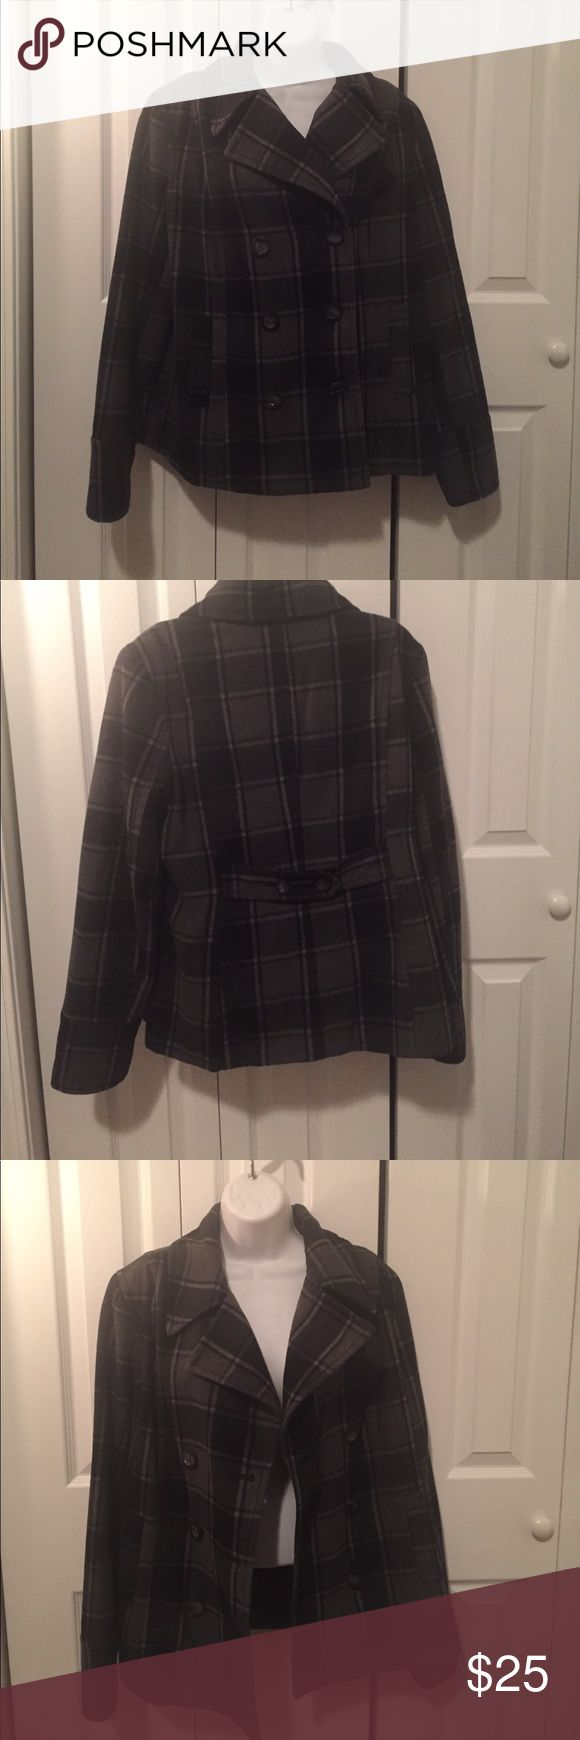 Old Navy Pea Coat Old Navy Pea Coat.  Black and gray plaid.  Size large.  Hip length.  Fully lined inside.  So comfy! Old Navy Jackets & Coats Pea Coats